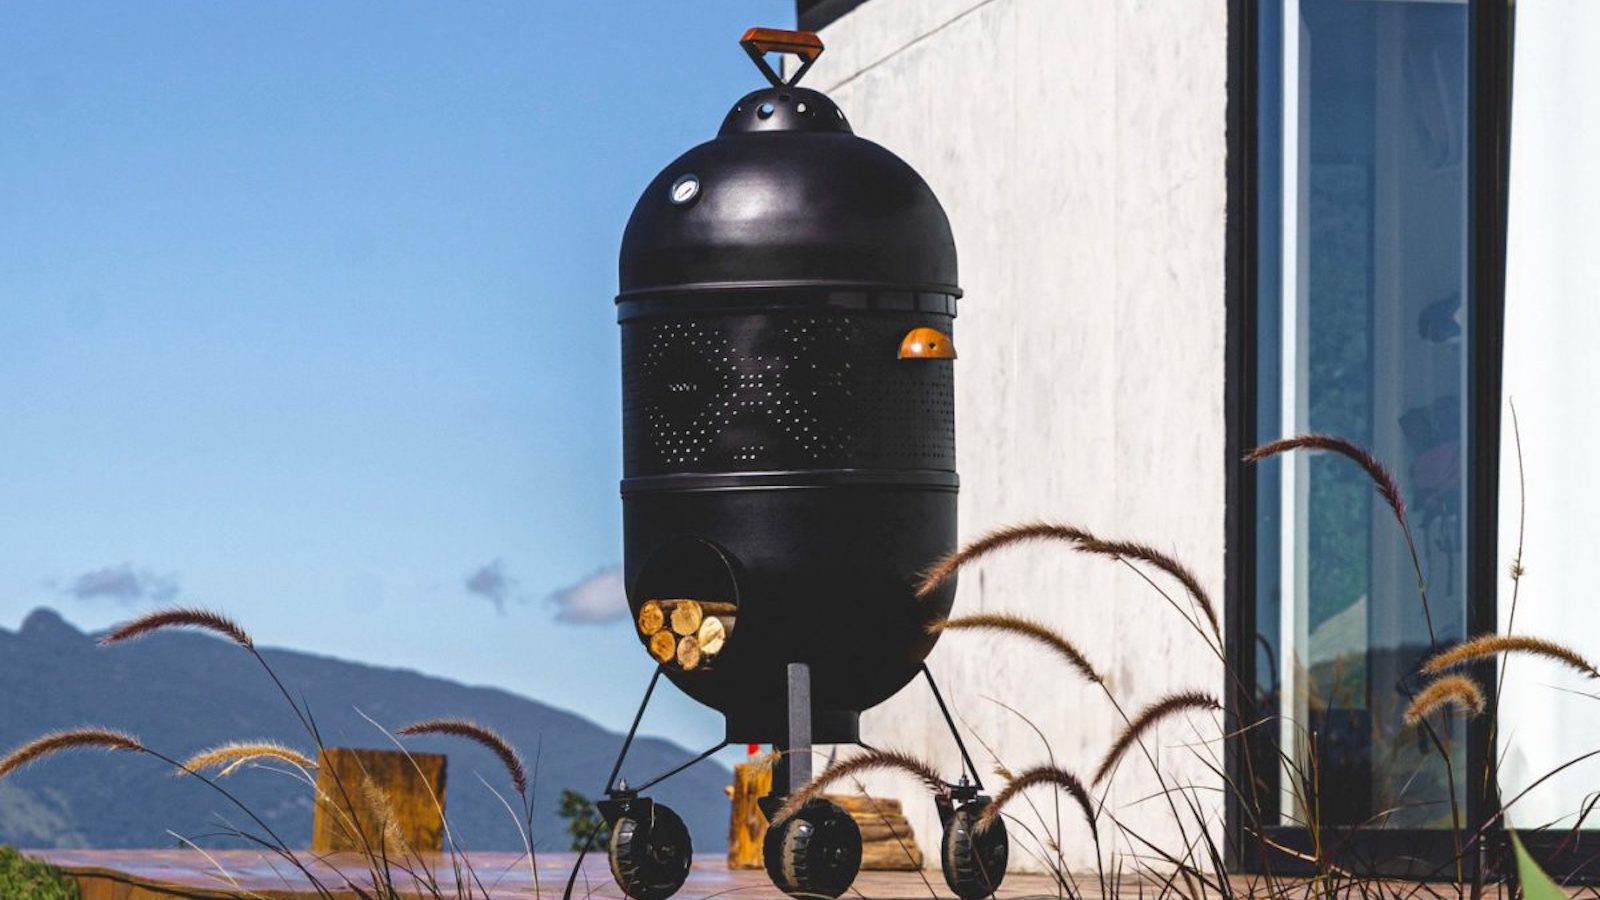 Noori V02 Airy woodburning stove has removable refractory plates that expose the flames